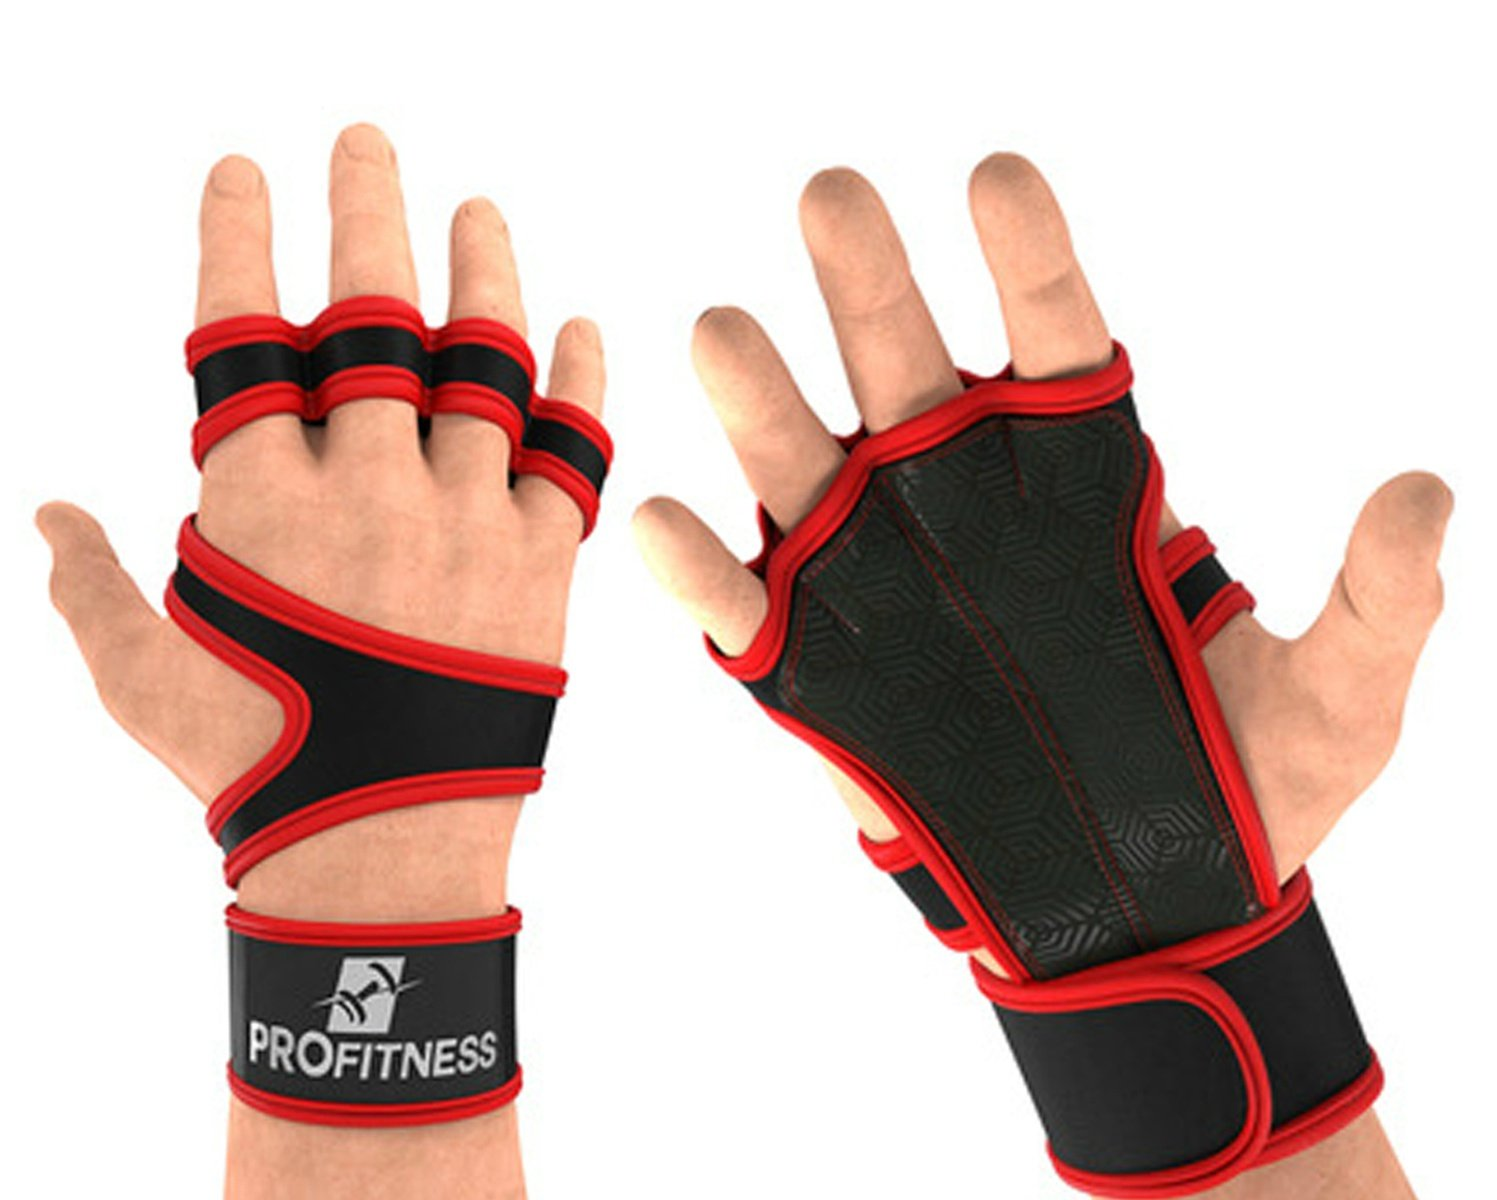 ProFitness Cross Training Gloves with Wrist Support by Non-Slip Palm Silicone Padding to avoid Calluses | For Weight lifting, WOD, Powerlifting & Gym Workouts | Ideal for Both Men & Women